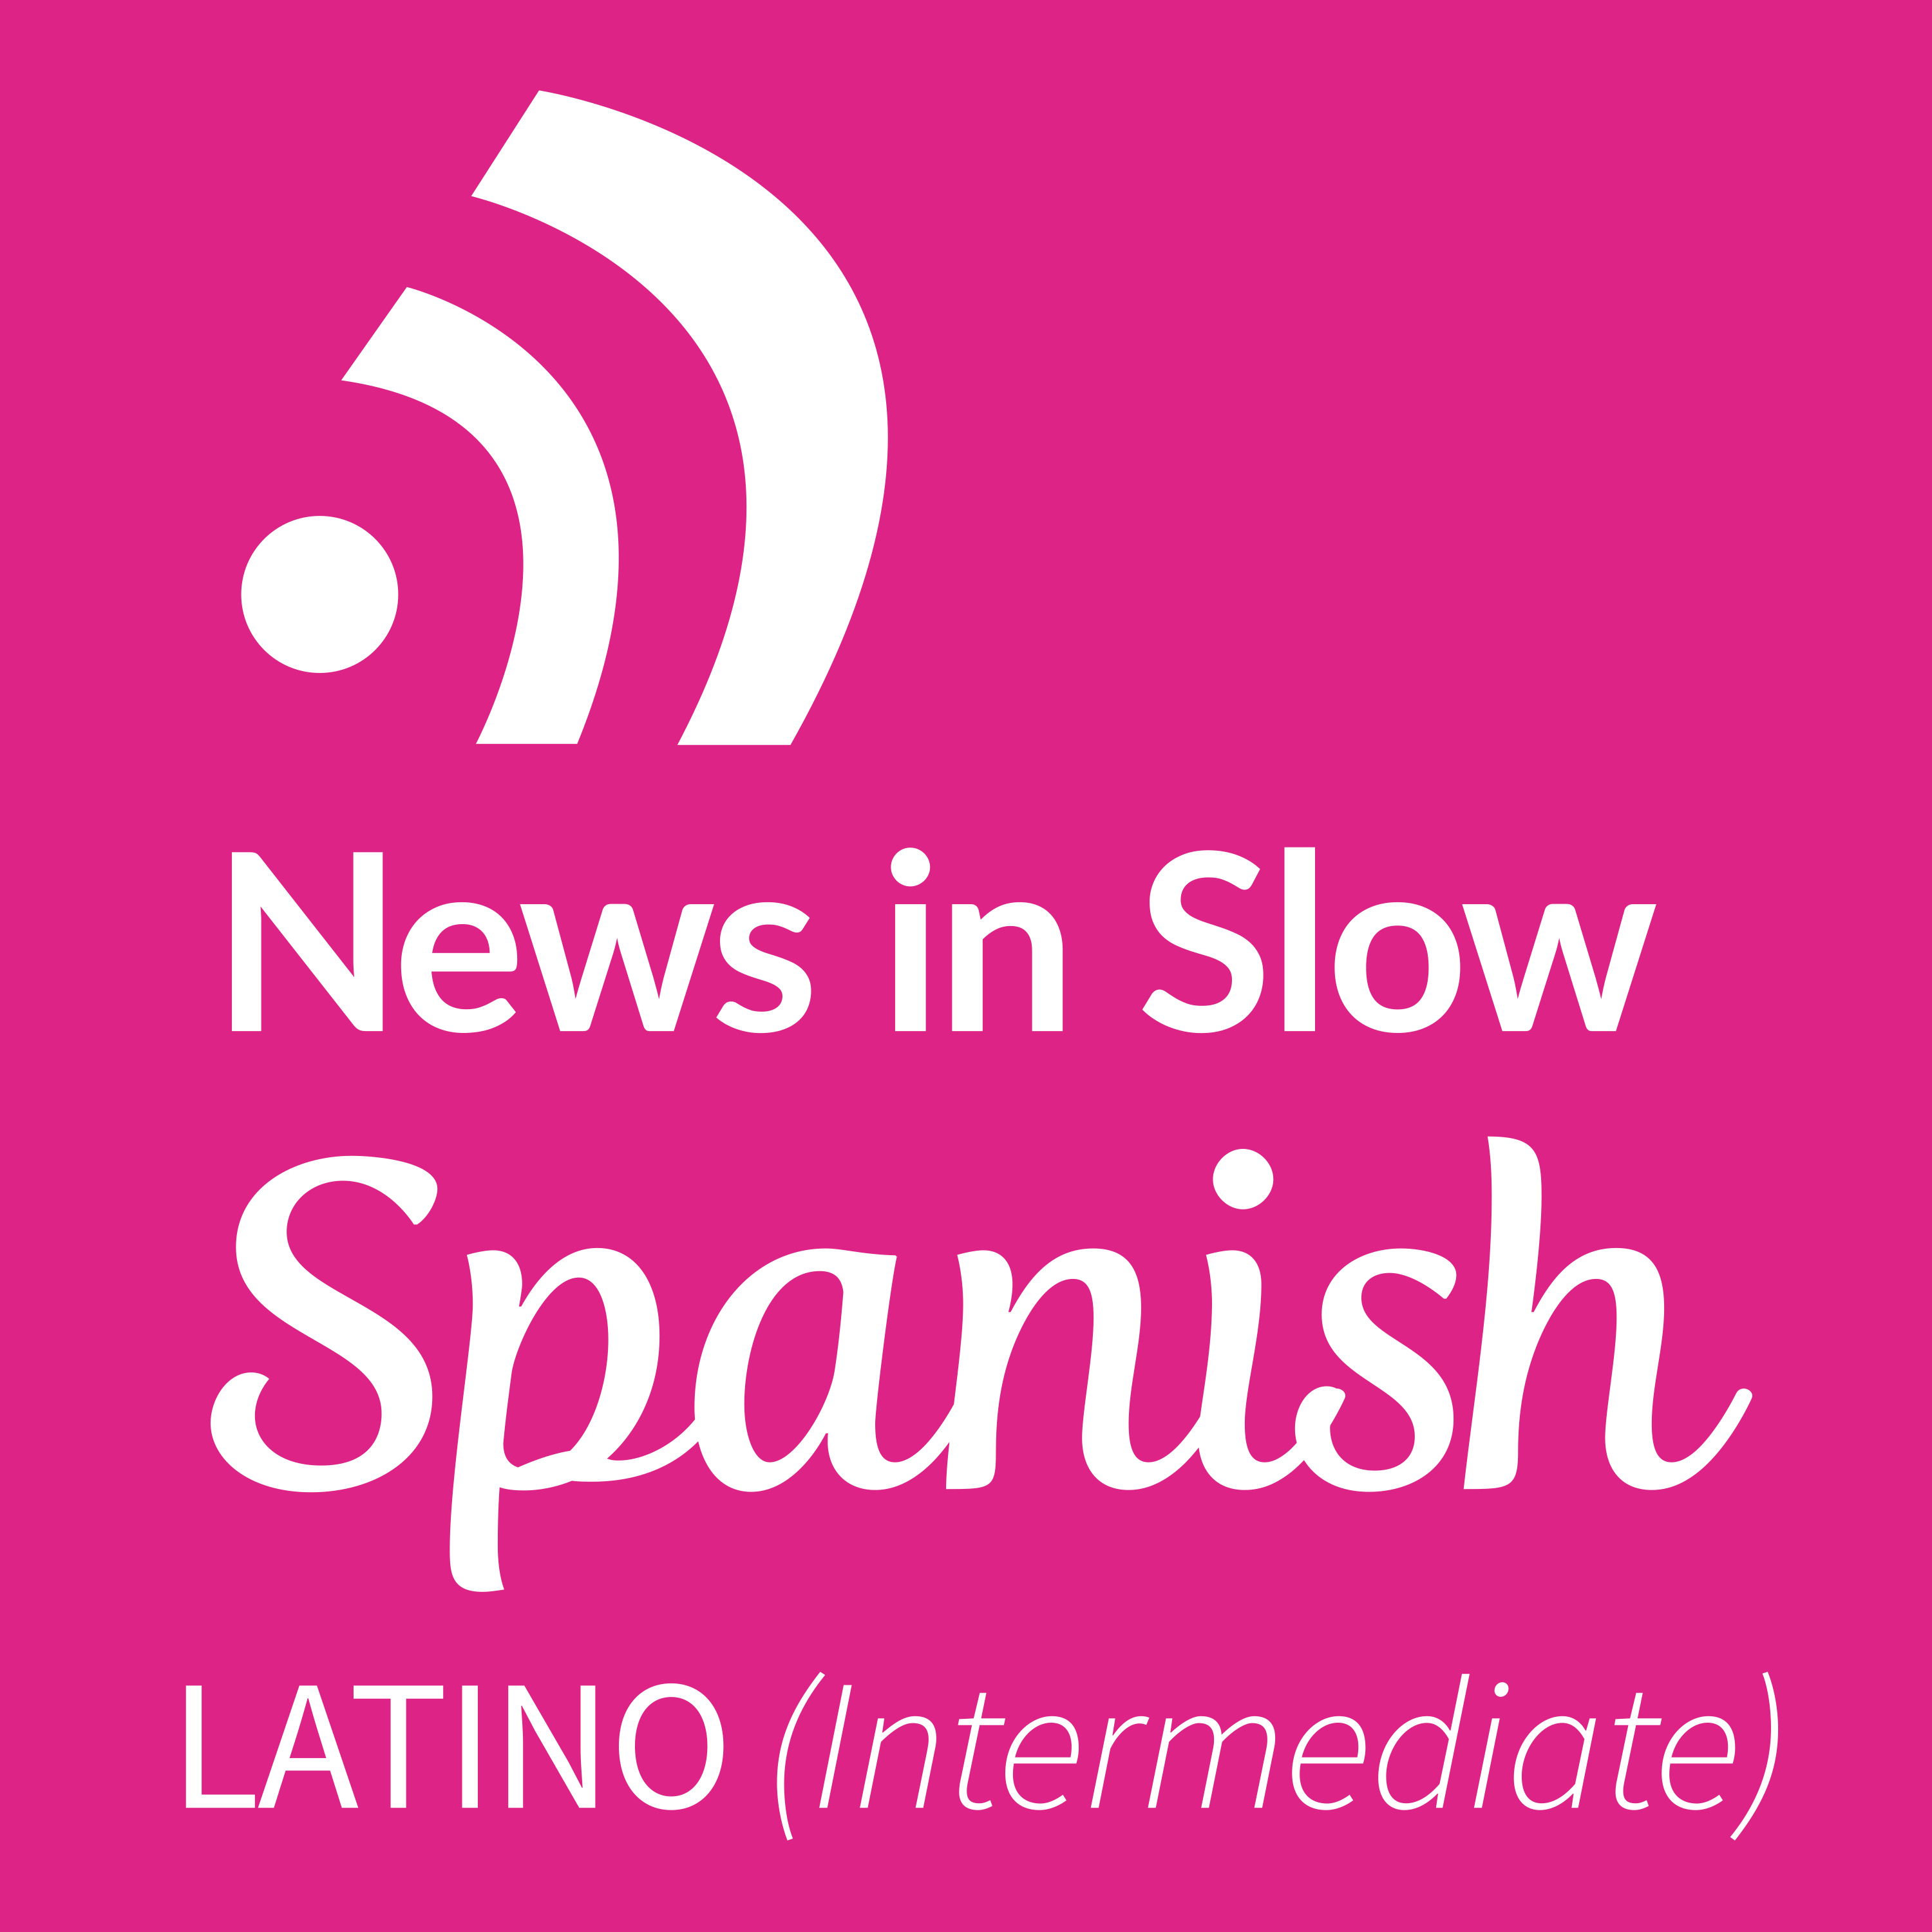 News in Slow Spanish Latino - # 155 - Spanish grammar, news and expressions